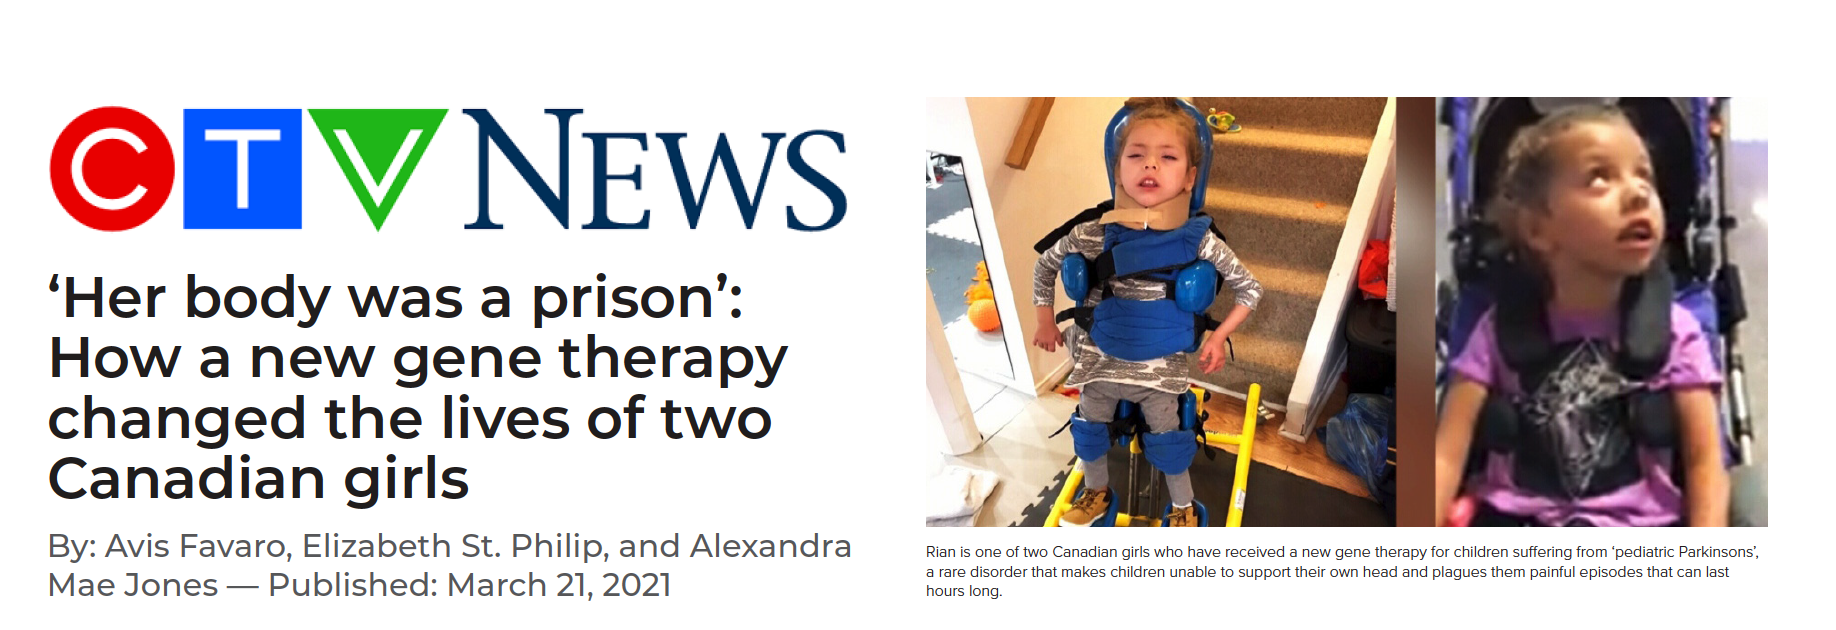 Her Body was a prison: How a new gene therapy change the lives of two Canadian girls